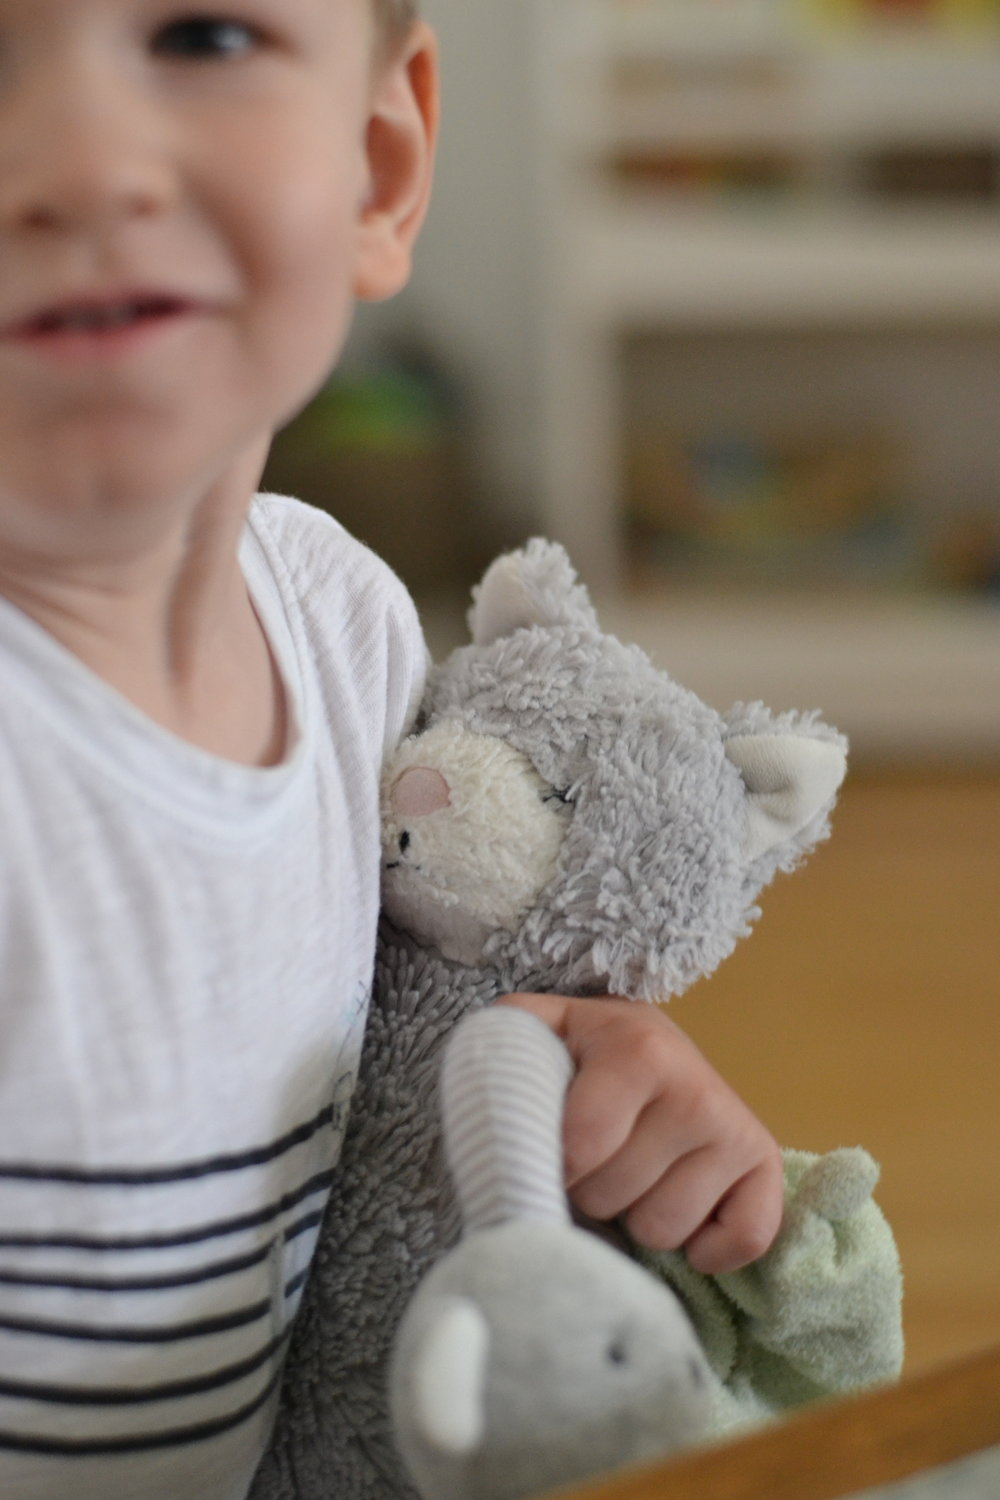 His beloved Bobby, along with other favorites: kitty and koala rattle (the rattle he insisted is his, and not the baby's)